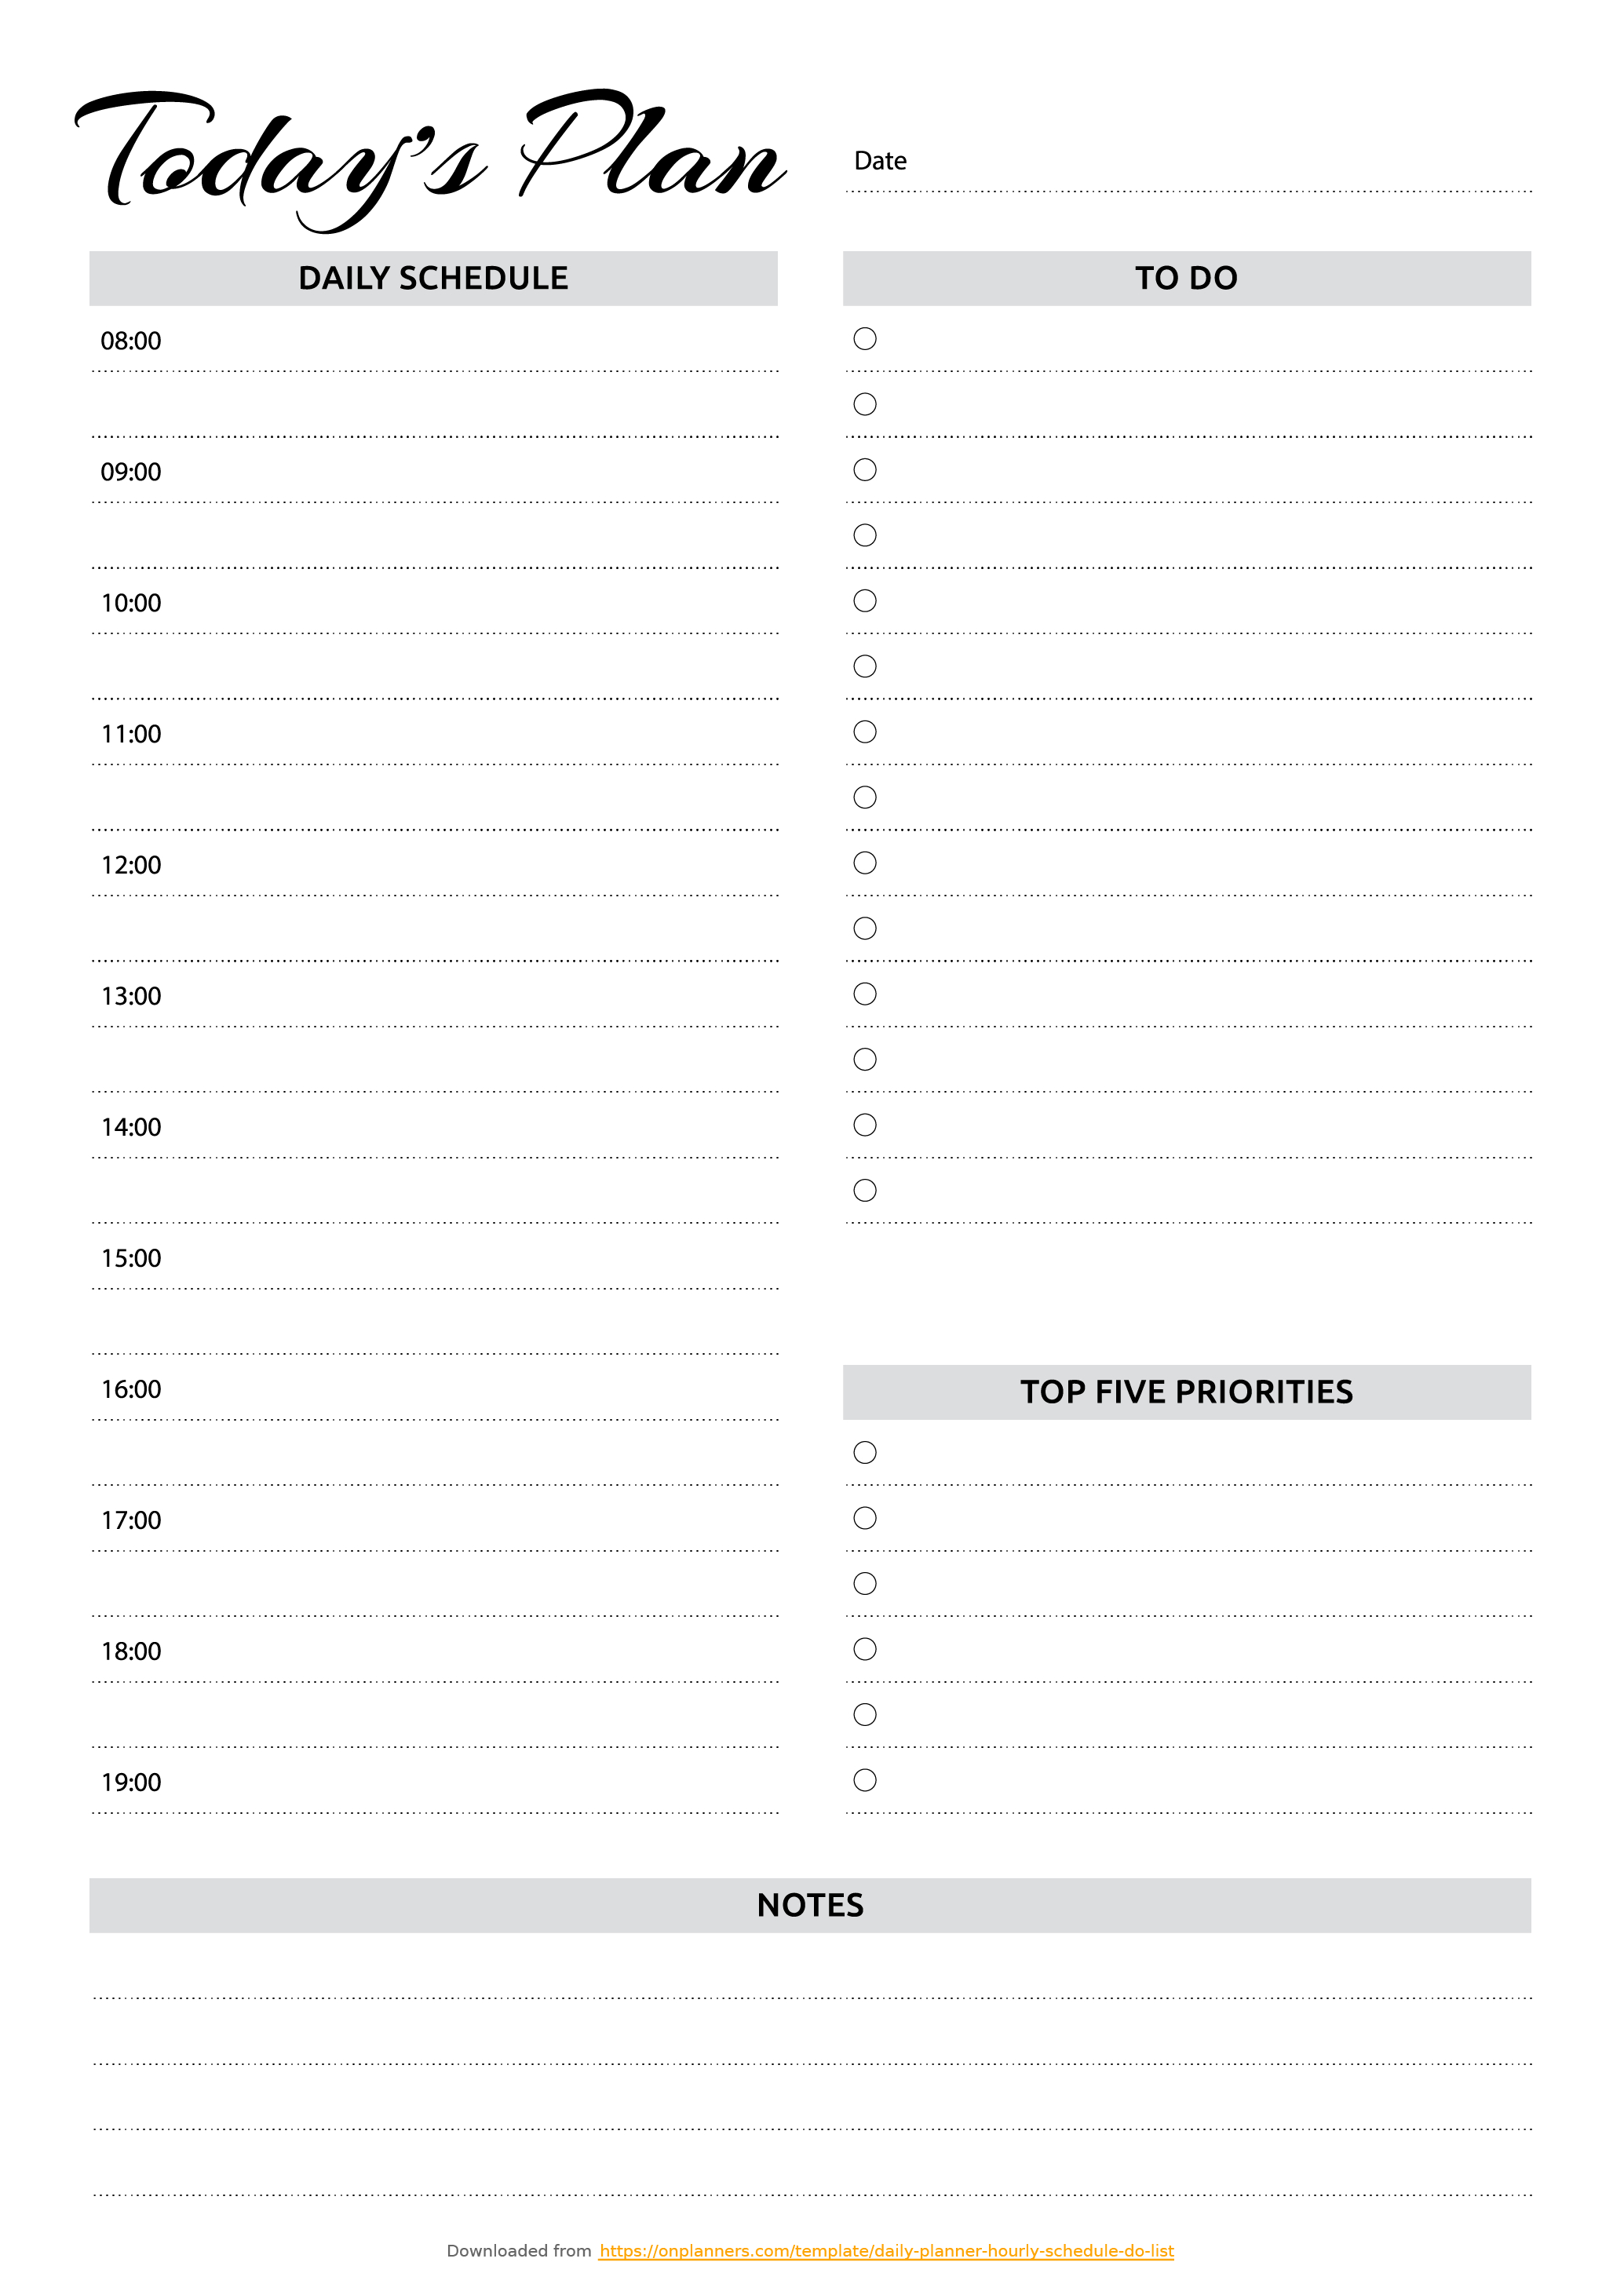 Free Printable Daily Planner With Hourly Schedule & To-Do List Pdf